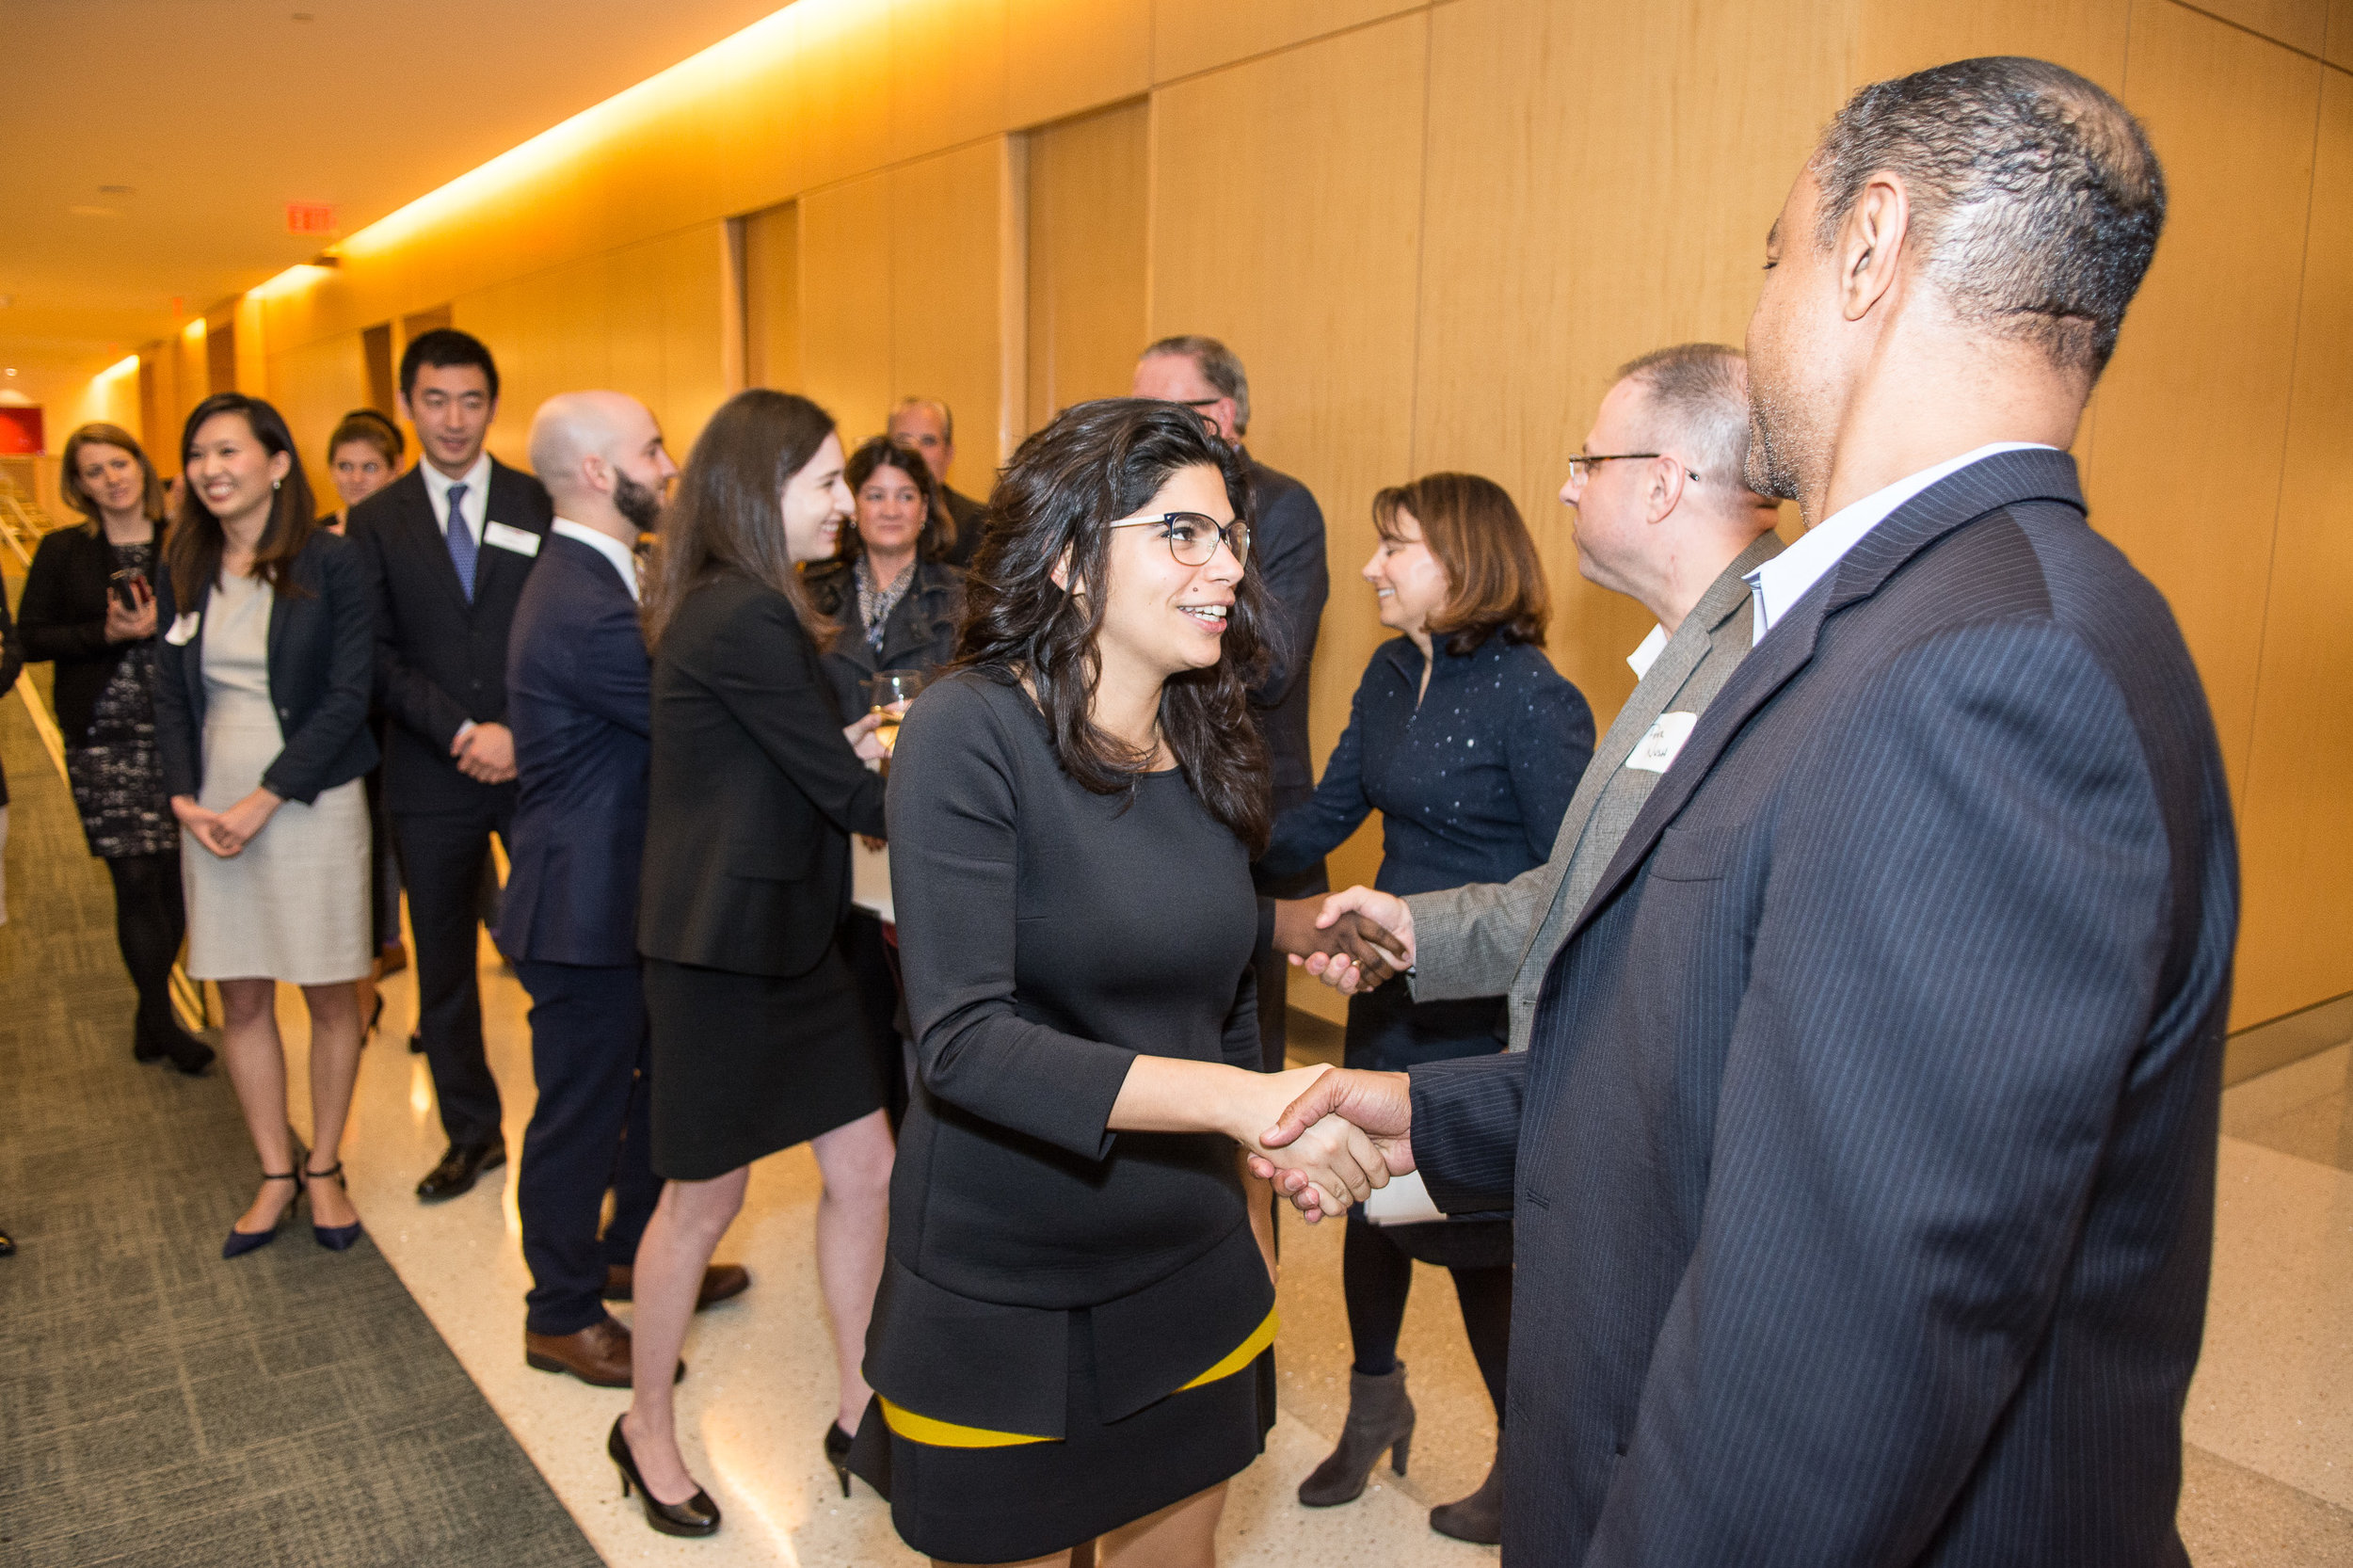 The competition brought together MBA students from a number of schools and allowed them to network with media and technology industry executives and recruiters while at the Comcast Center in Philadelphia.